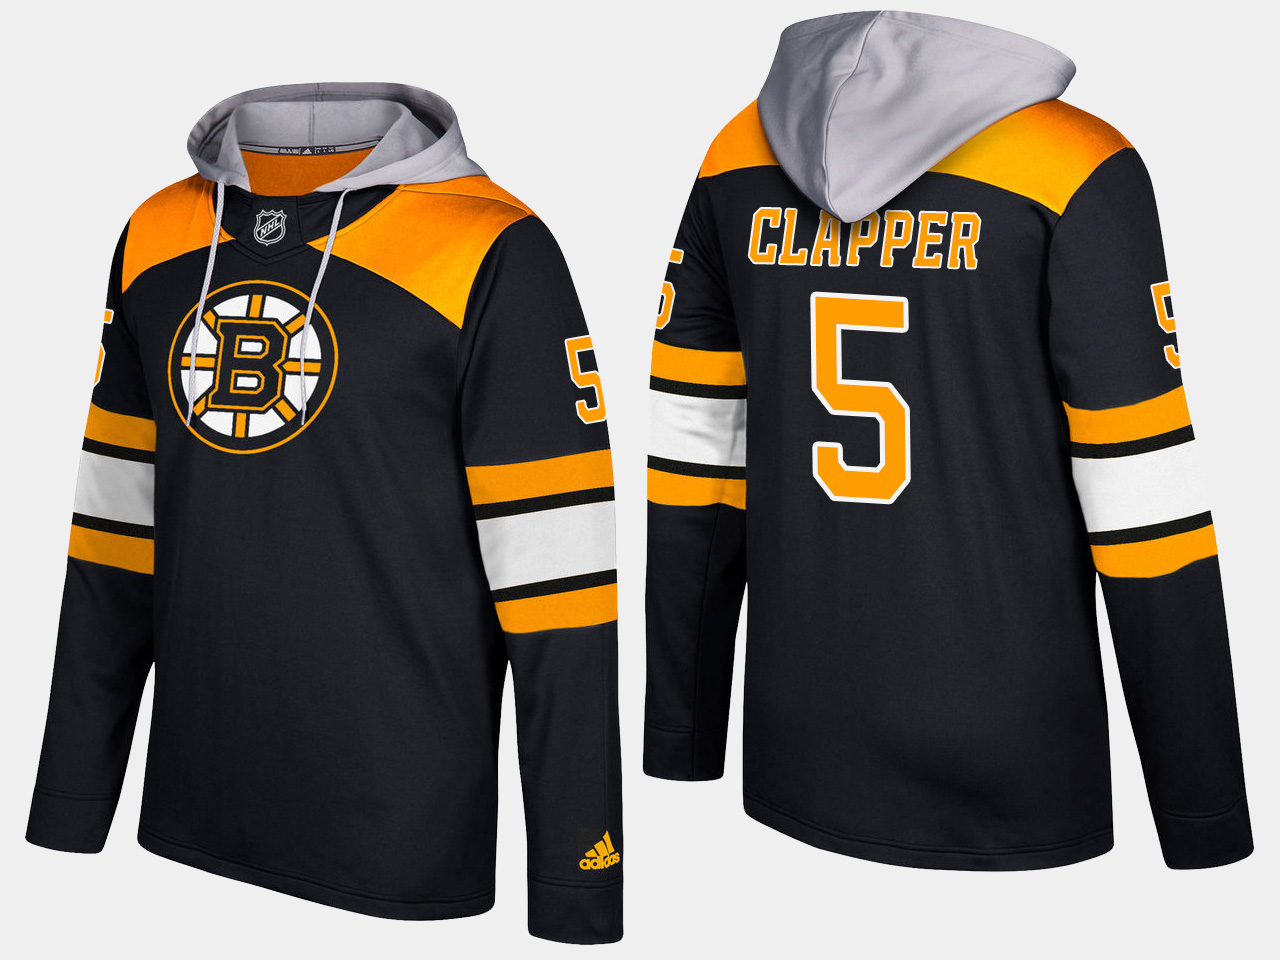 Men NHL Boston bruins retired 5 dit clapper black hoodie